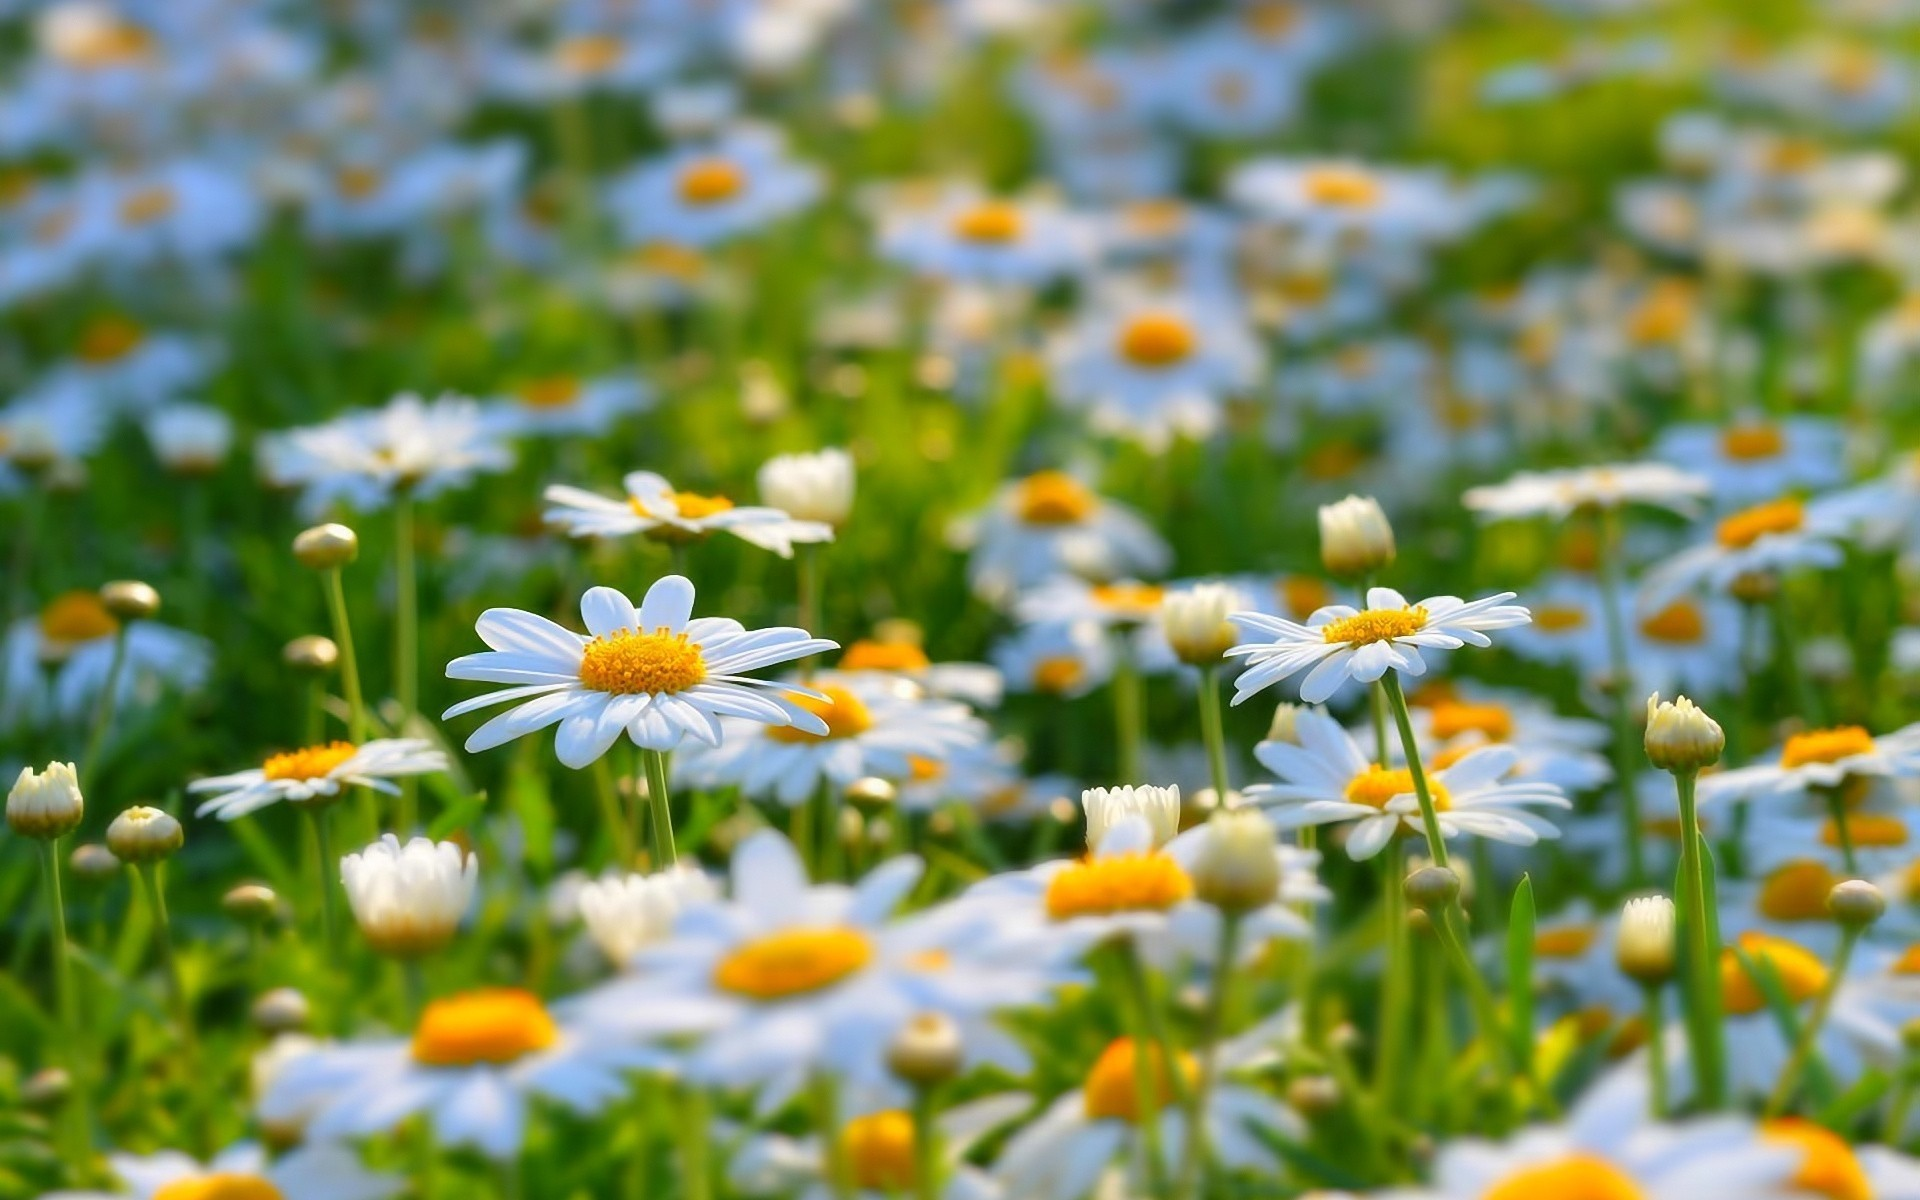 flowers nature summer chamomile flower flora fair weather hayfield field outdoors bright grass leaf sun growth garden color sunny blooming petal daisy cool gorgeous